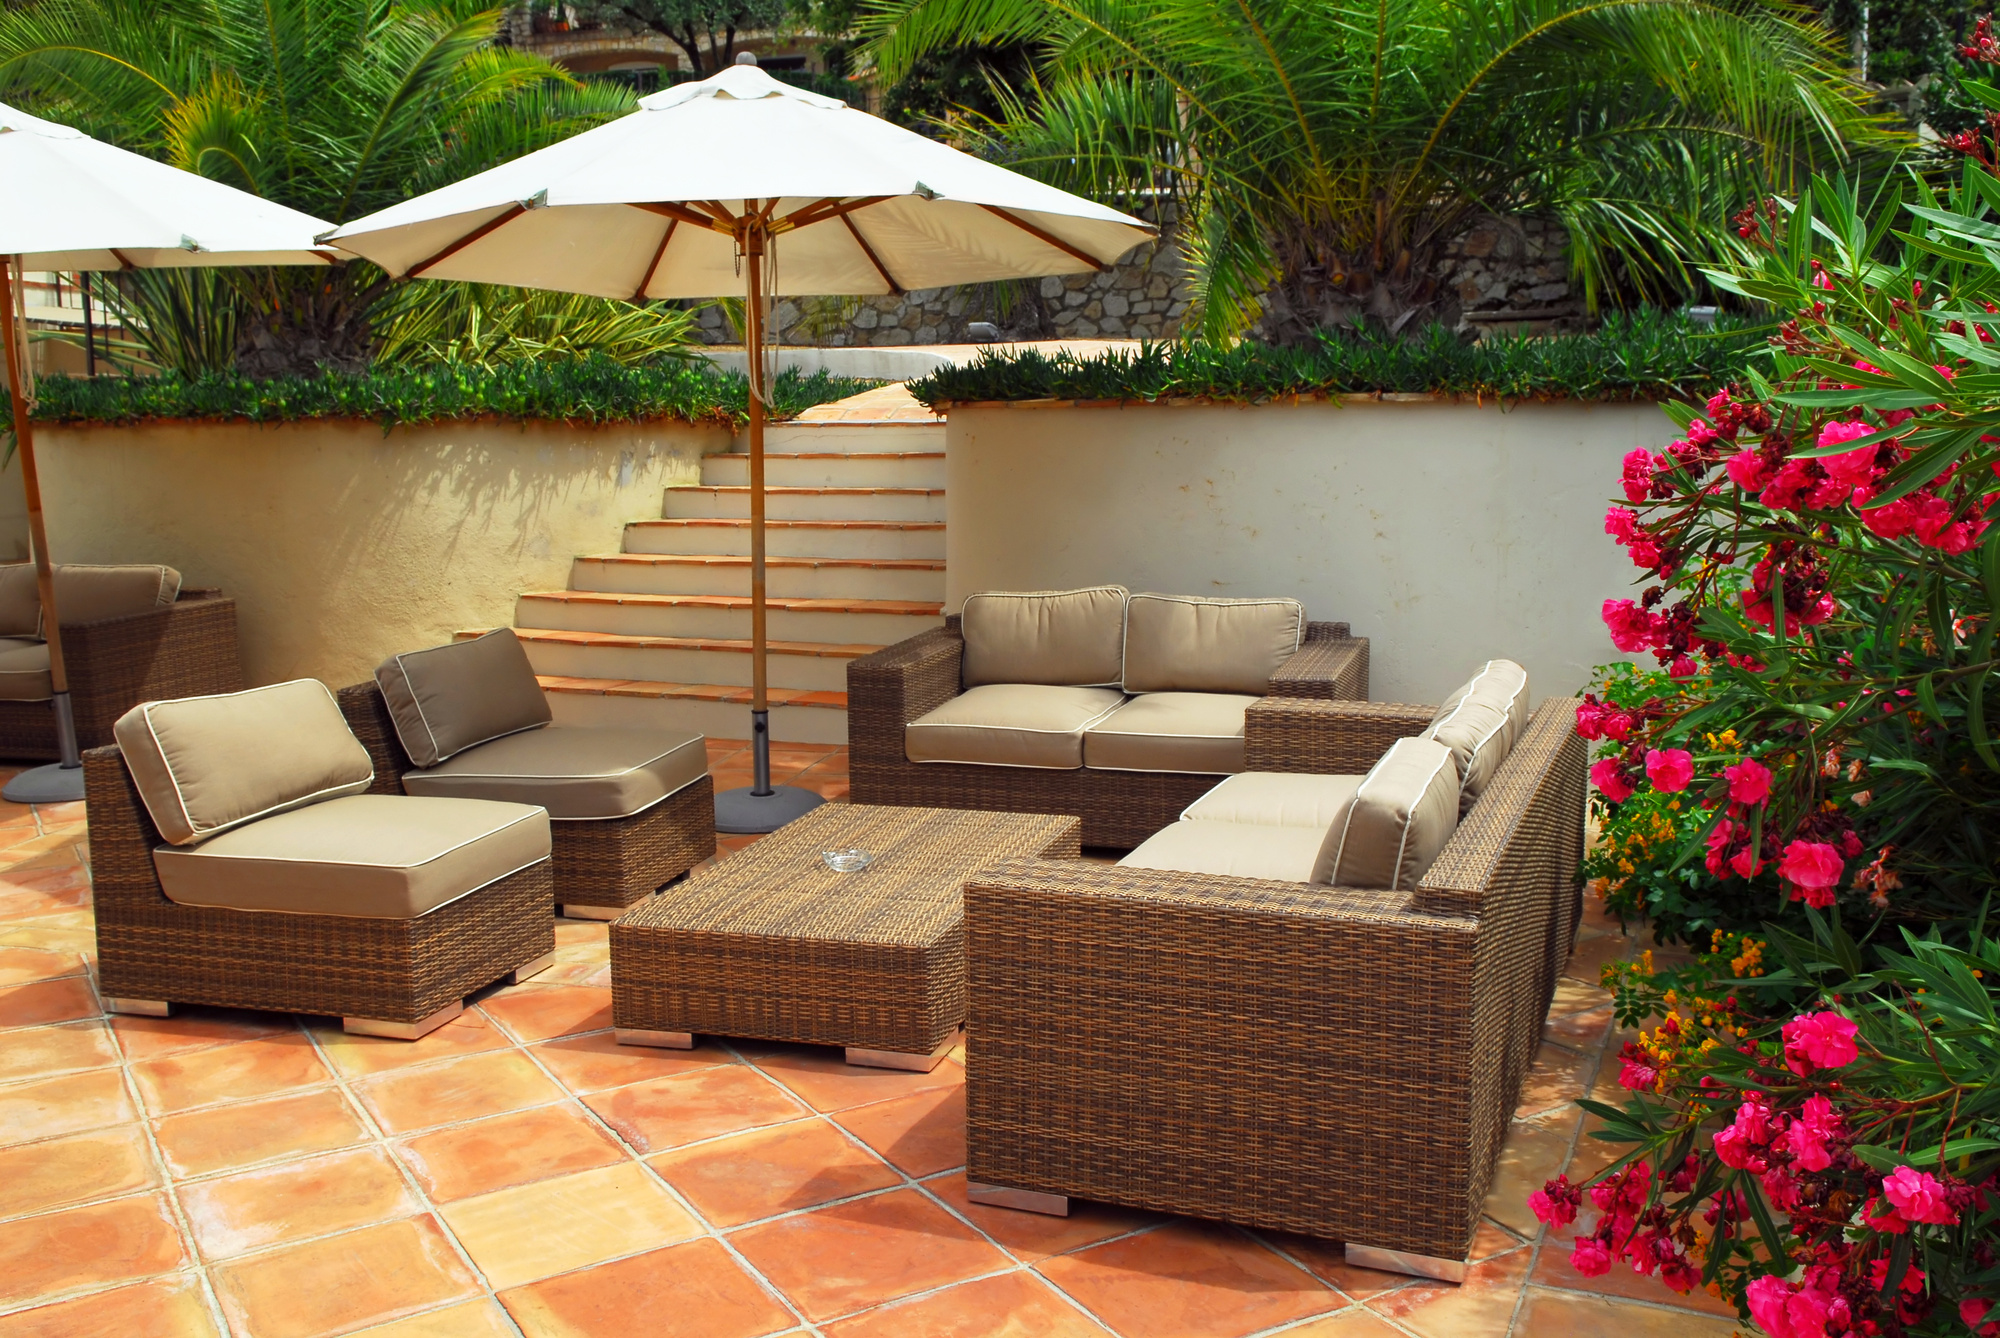 10 Patio Decorating Ideas For The Summer Interior Design Inspiration